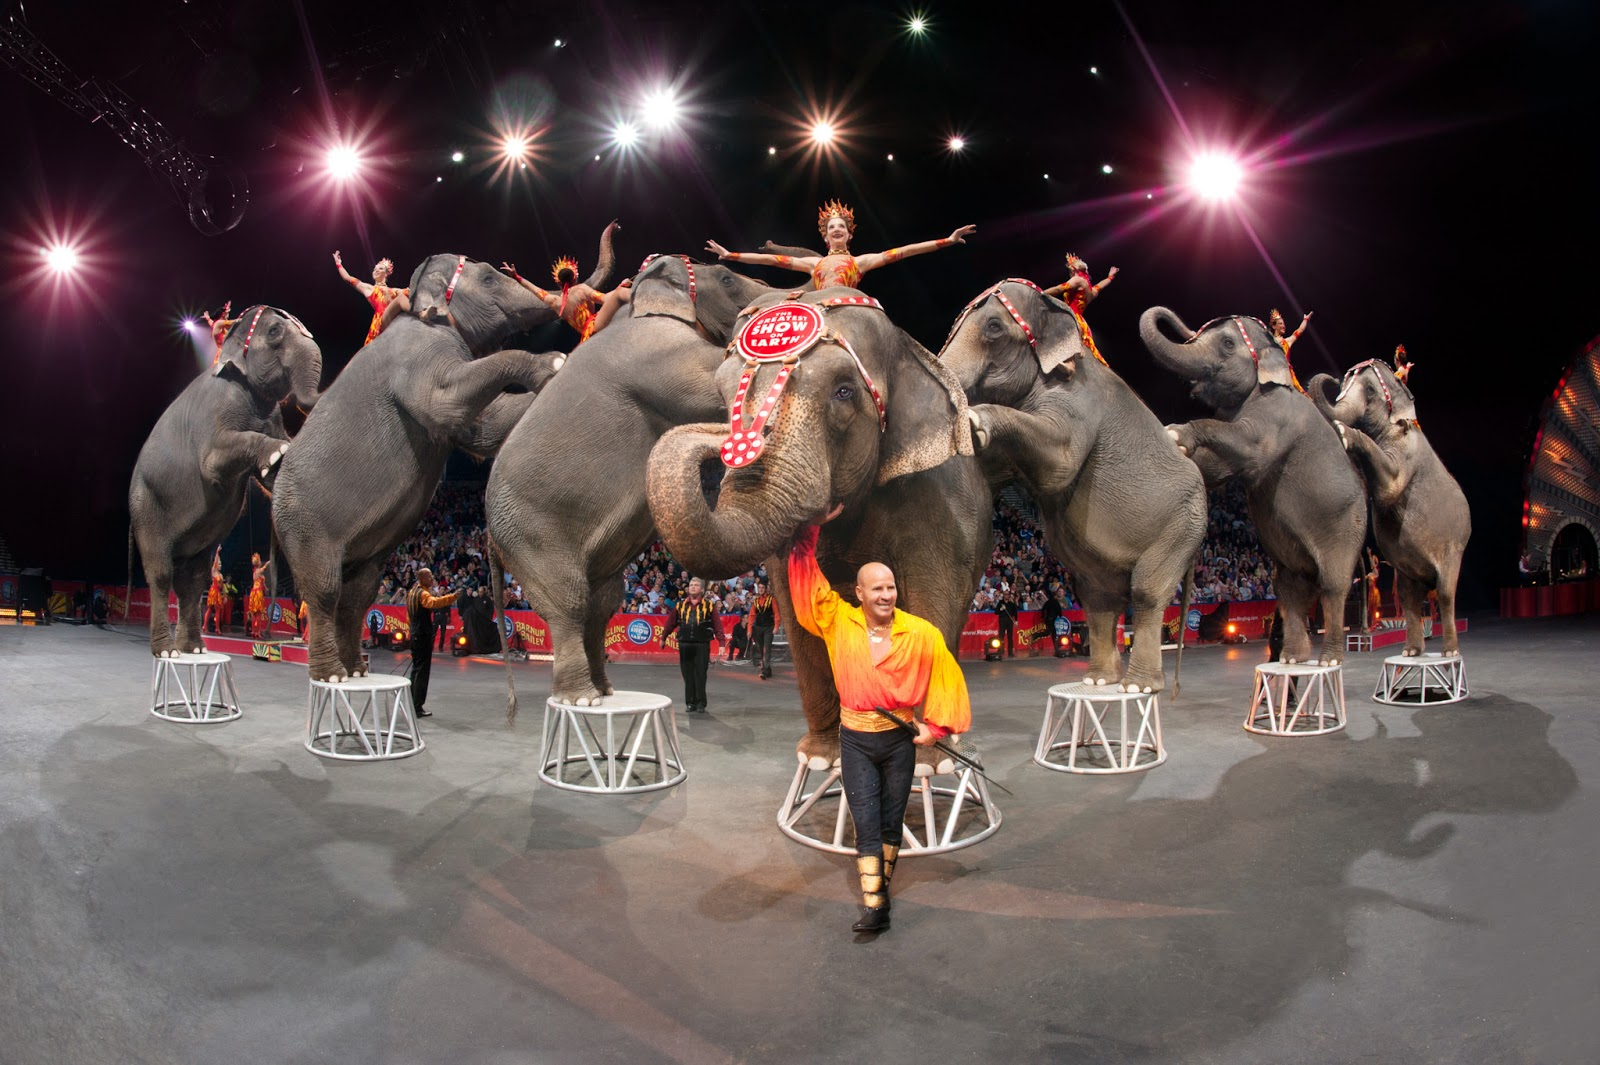 Ringling Bros. is finally doing the right thing for elephants